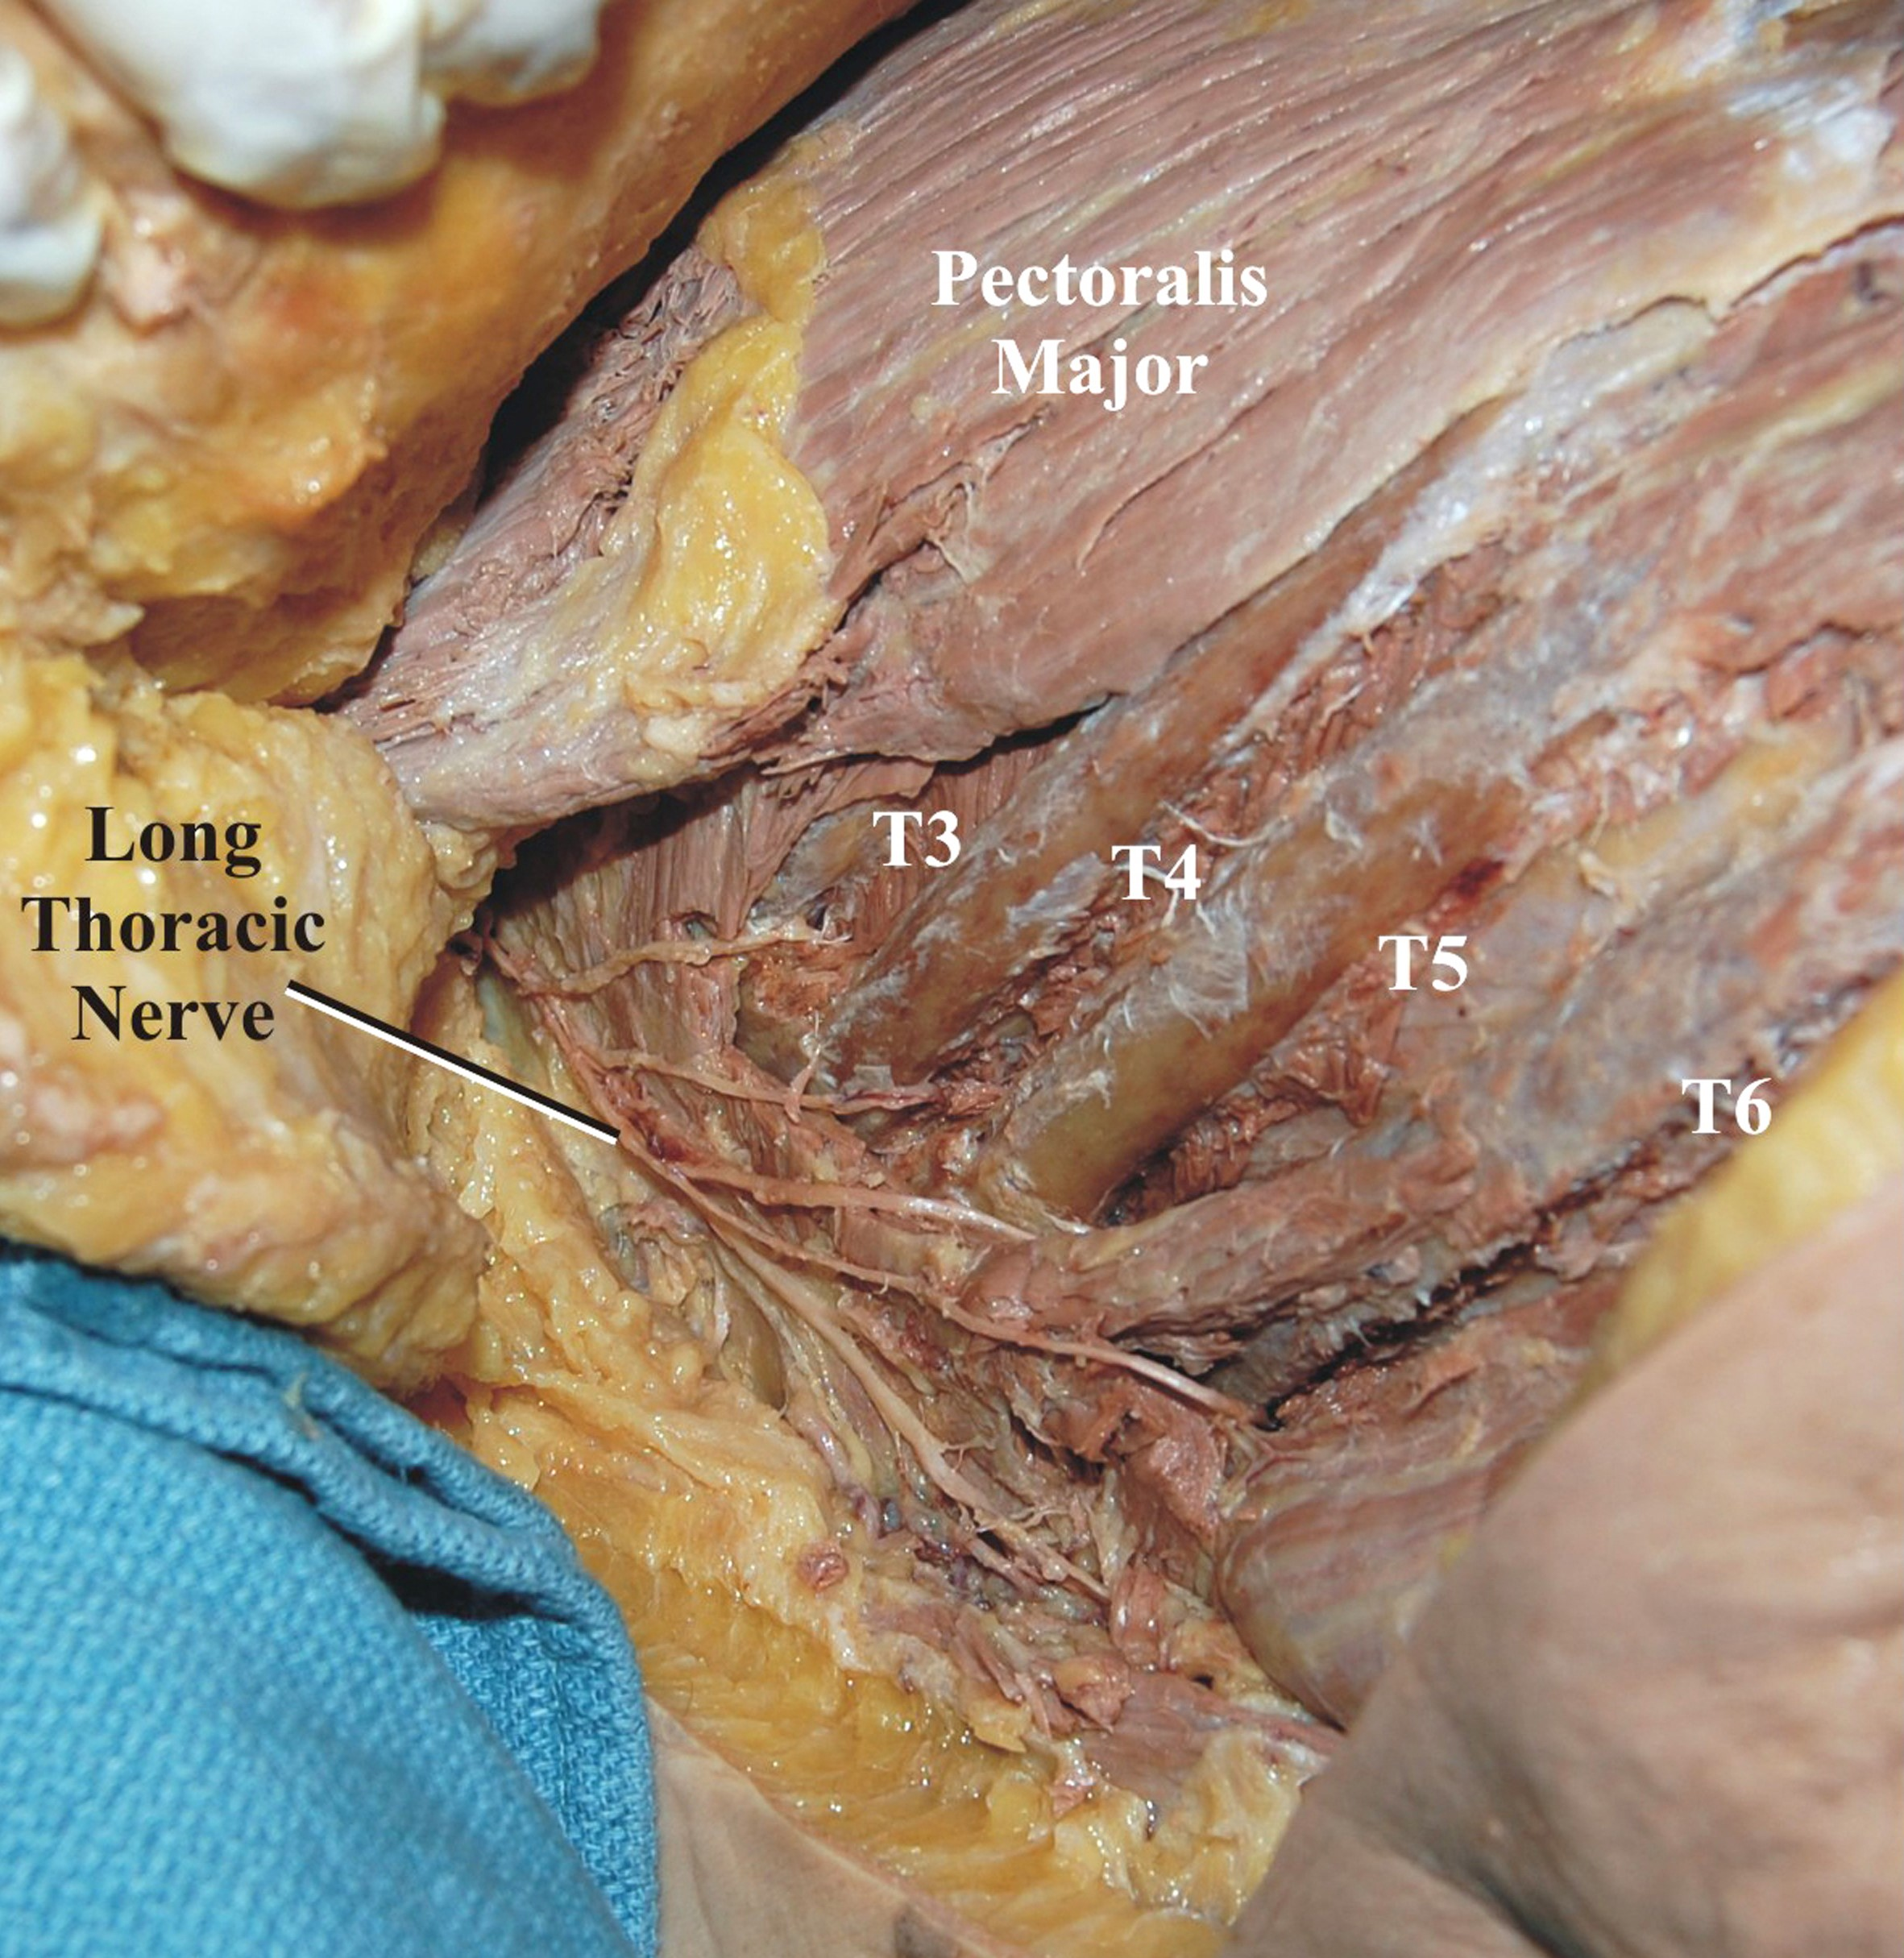 Cureus Intercostal Nerve To Long Thoracic Nerve Transfer For The